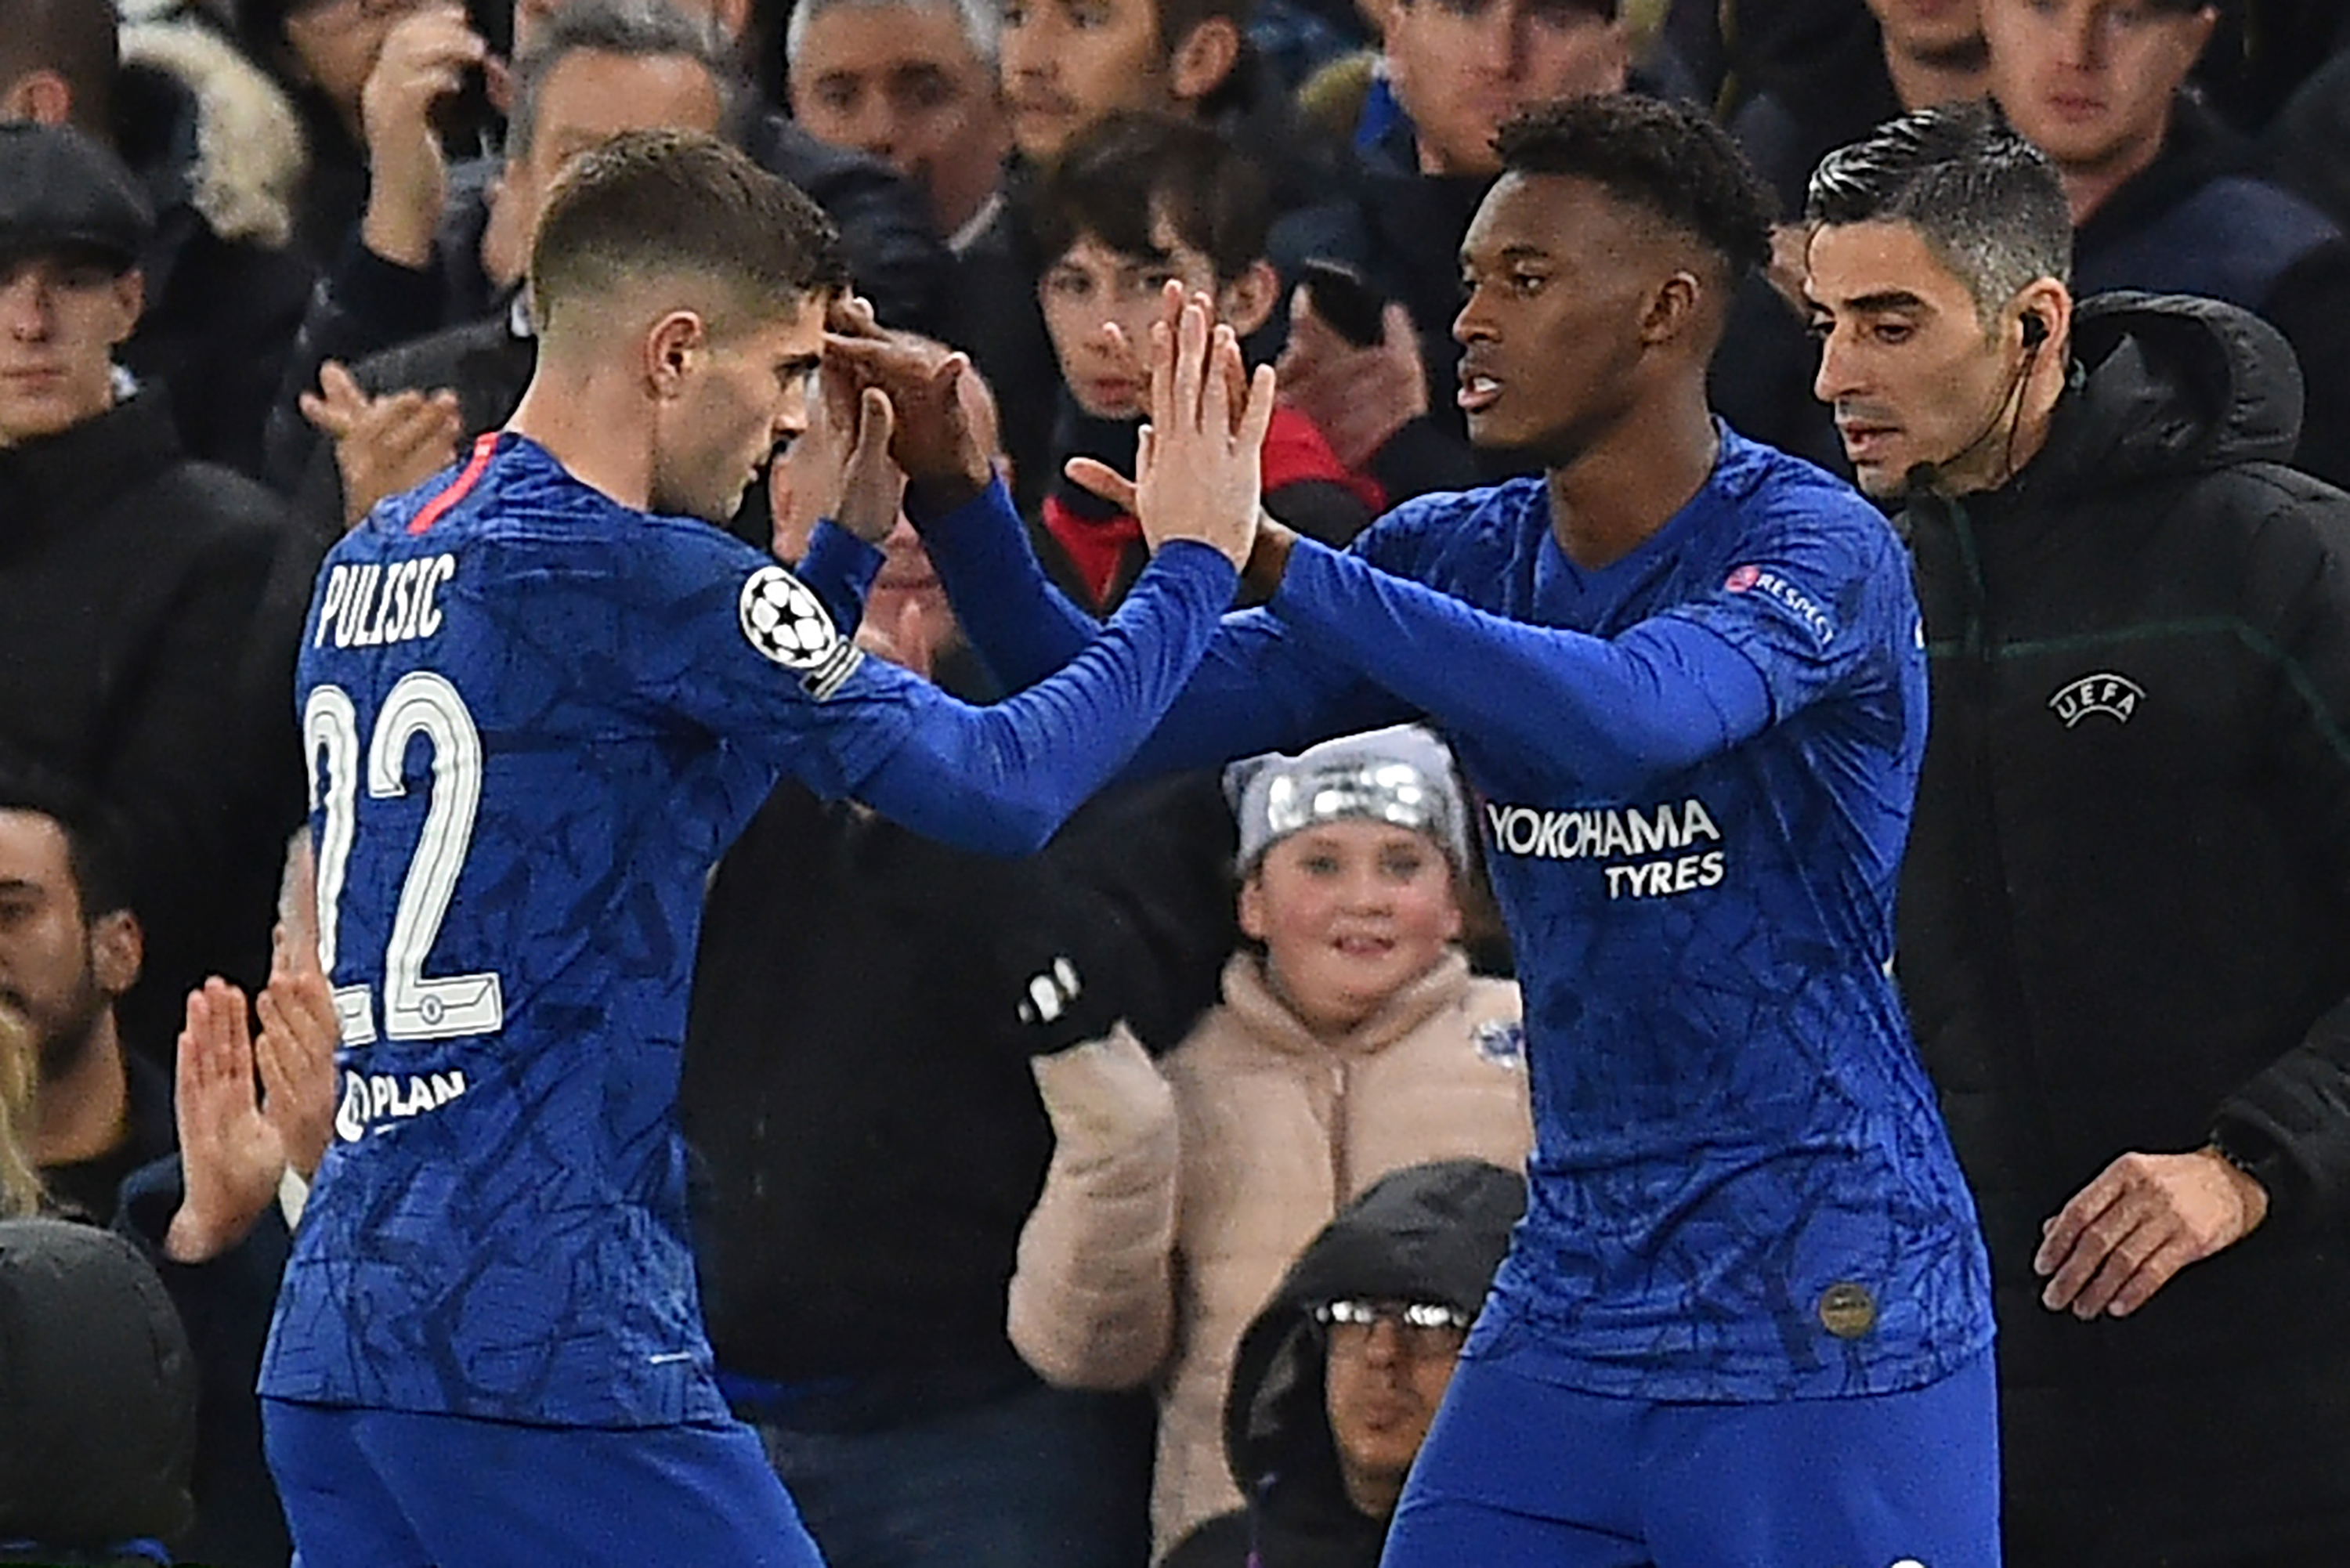 Hudson-Odoi unavailable but Pulisic is back for Chelsea (Photo by GLYN KIRK/AFP via Getty Images)